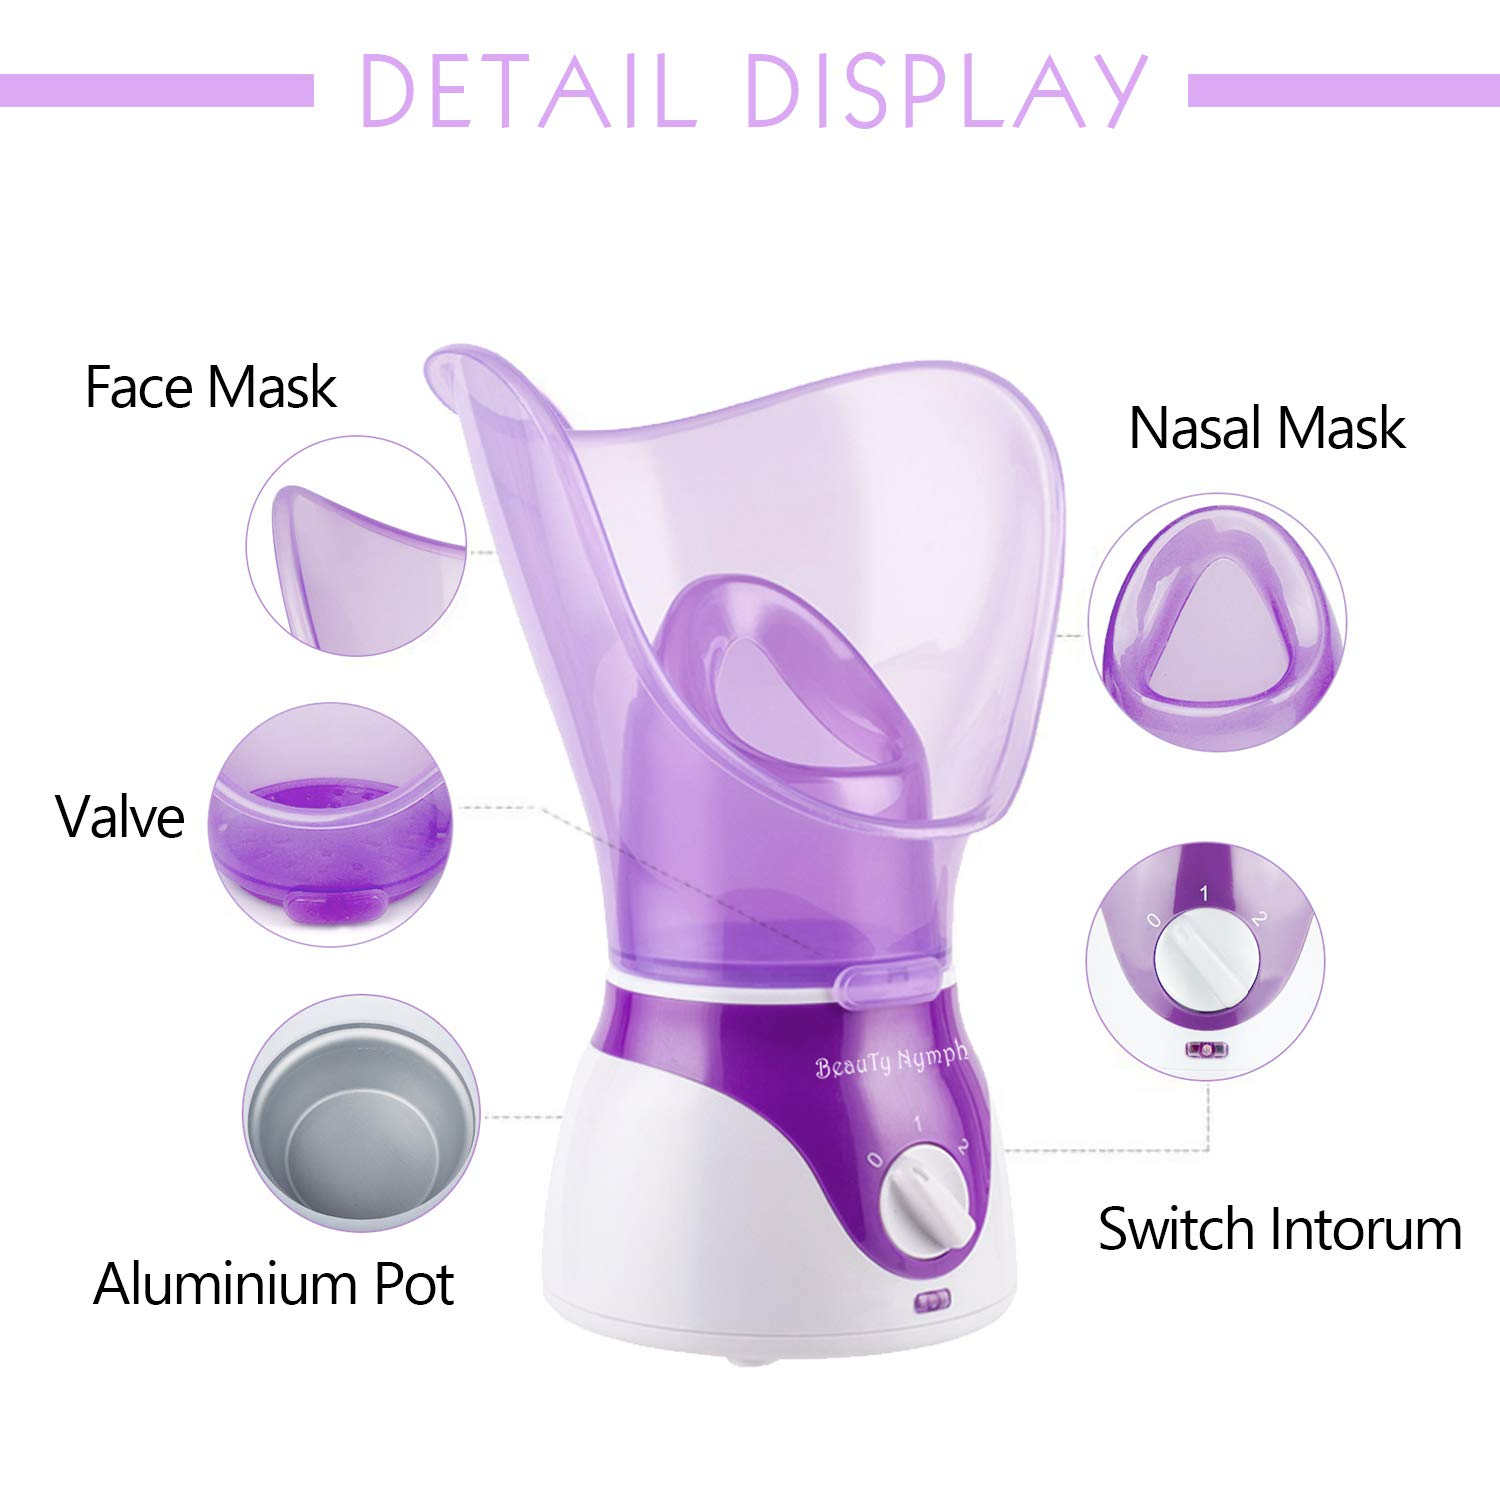 Beauty Nymph Spa Home Facial Steamer Sauna Pores with Timer and Extract Blackheads, Rejuvenate and Hydrate Your Skin for Youthful Complexion- Face Steaming Skincare Deep Cleanse SPA (Purple A): Beauty